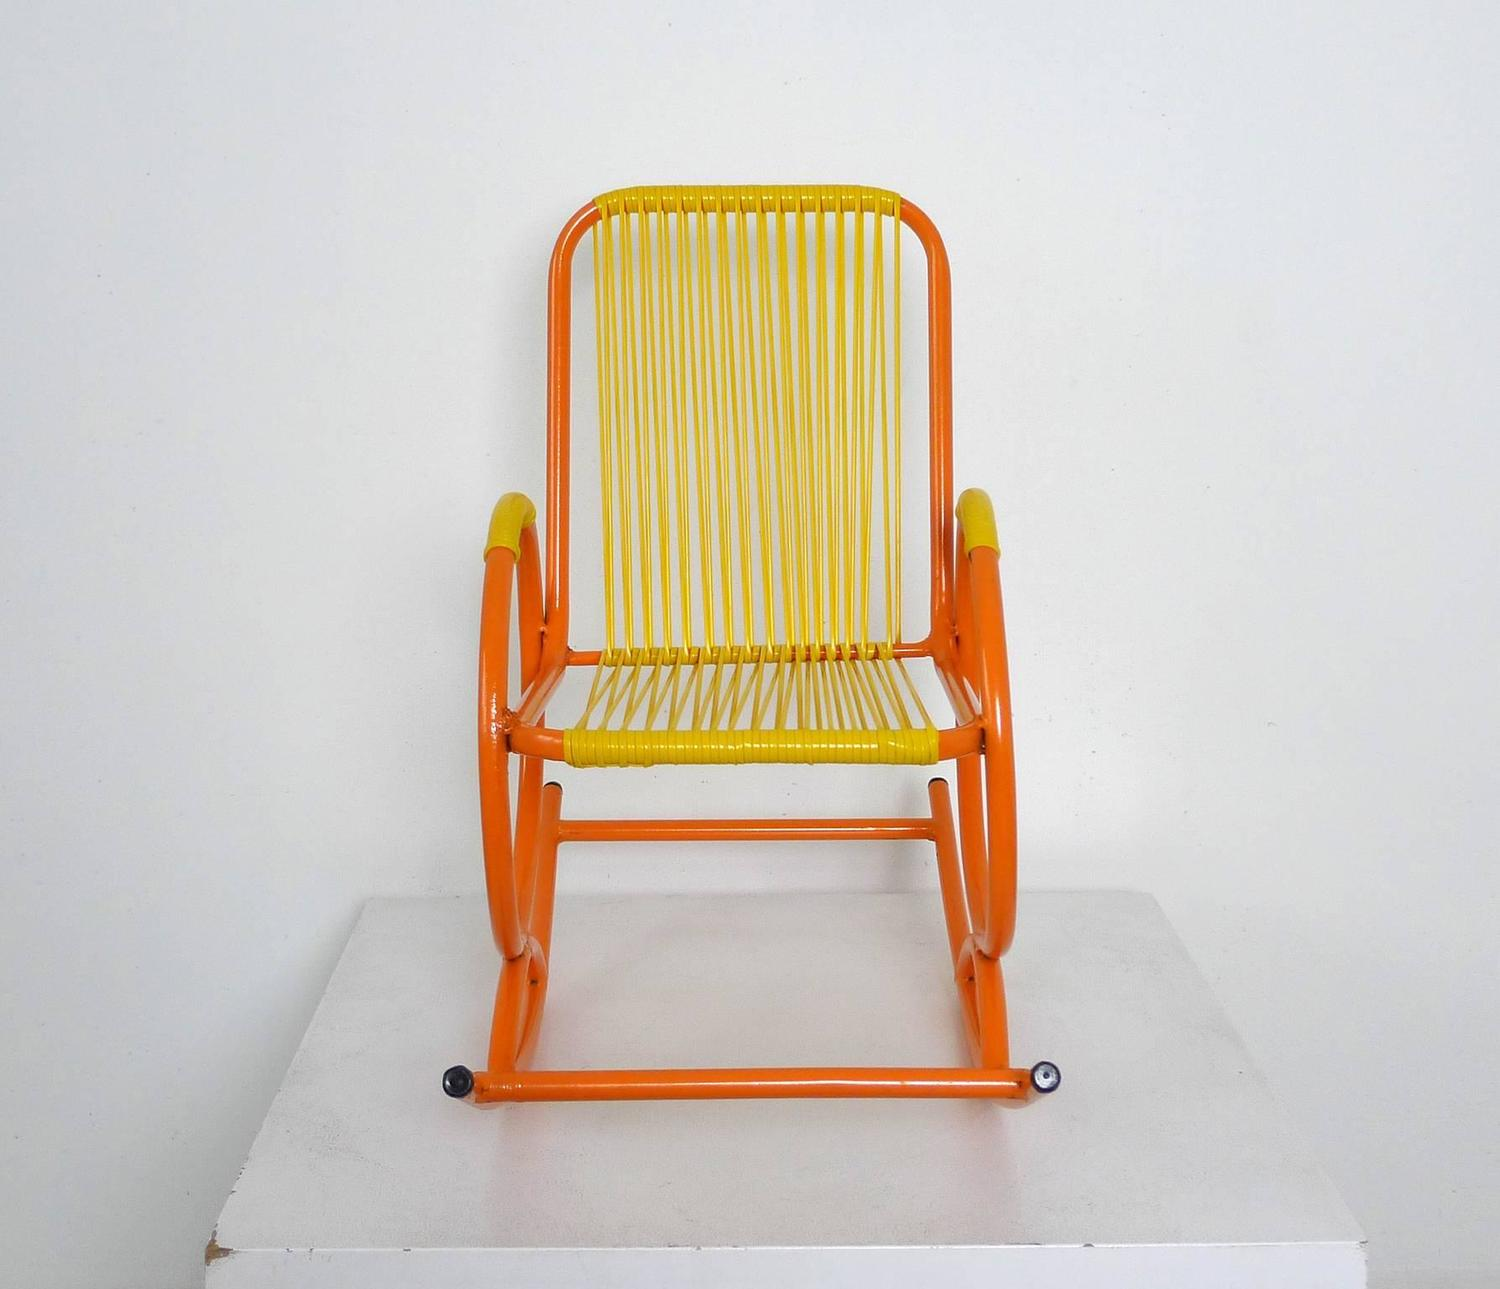 1950s Rocking Chair for Children from Italy For Sale at 1stdibs